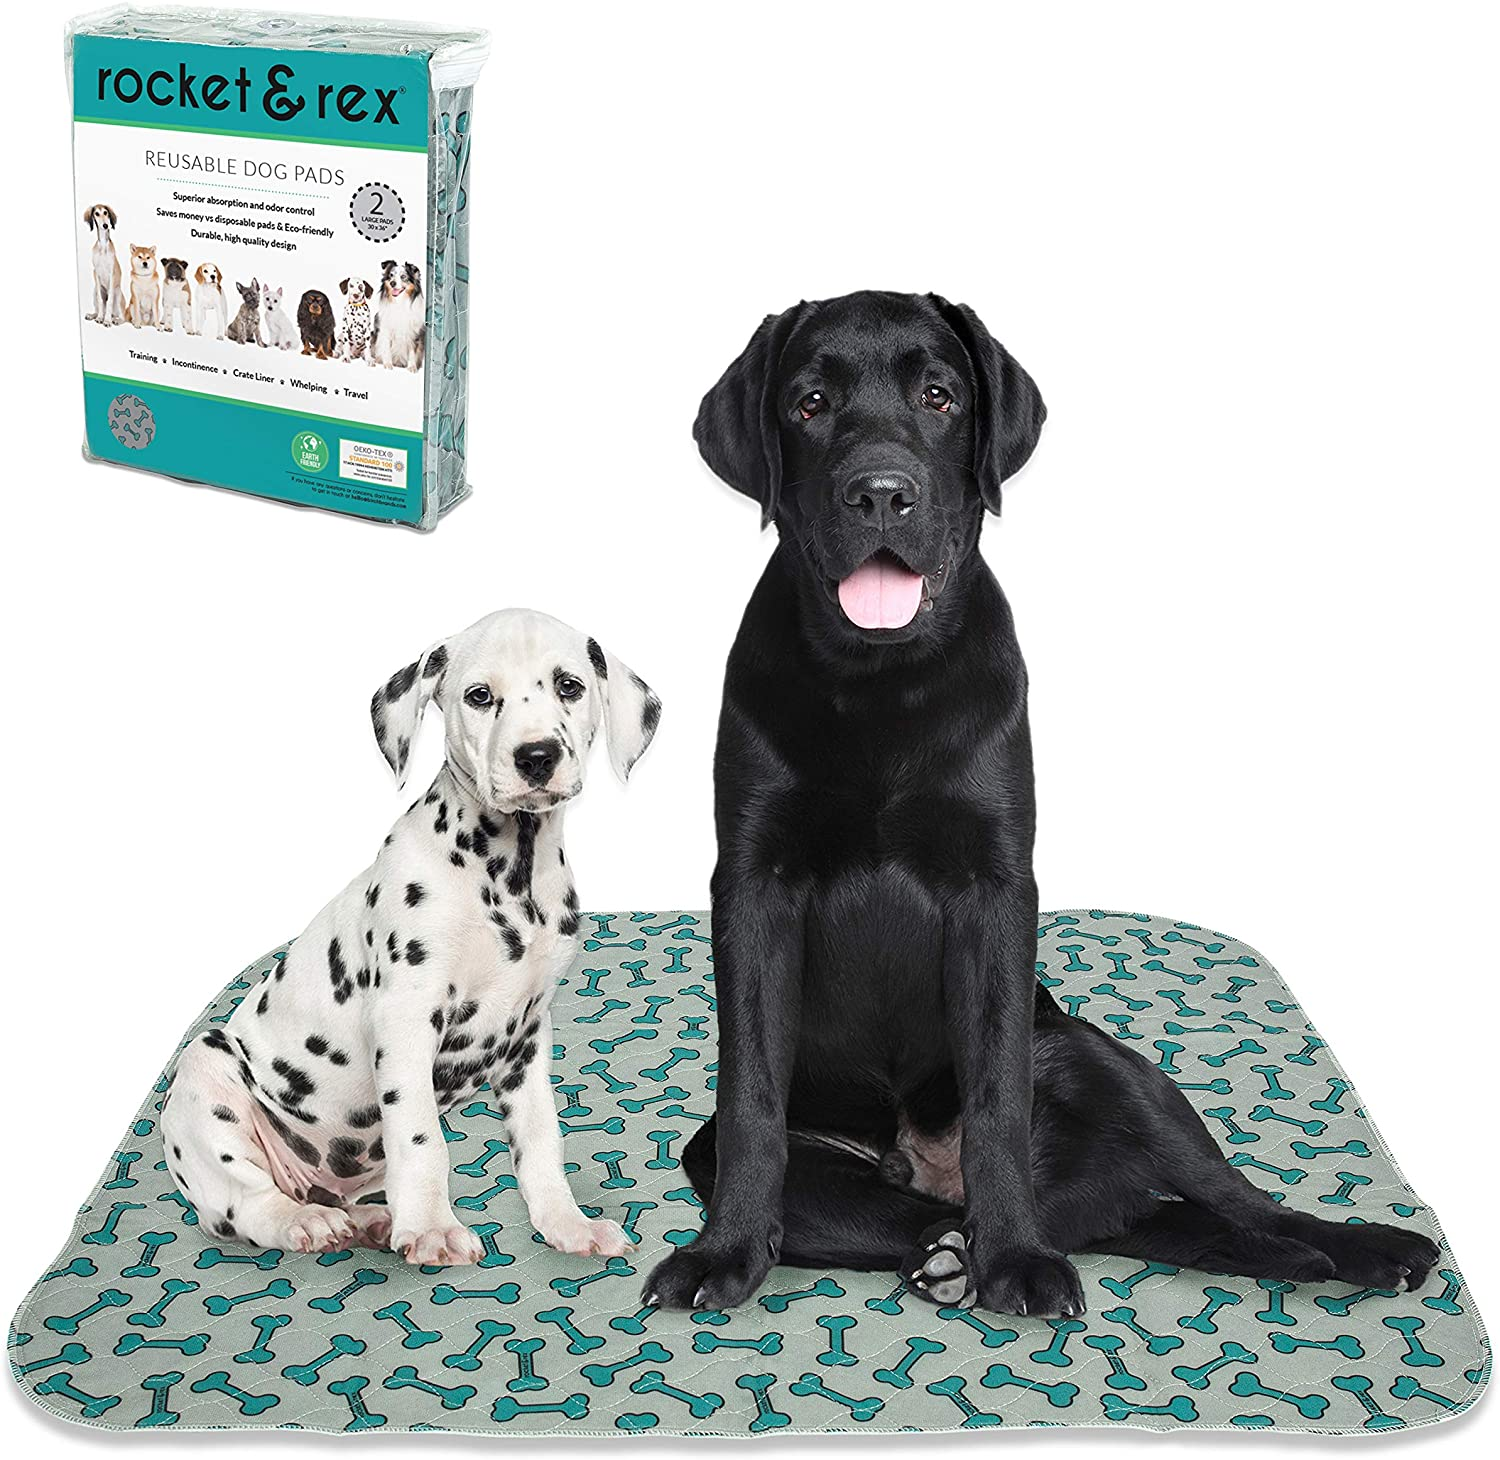 Two dogs sitting on a washable puppy pad